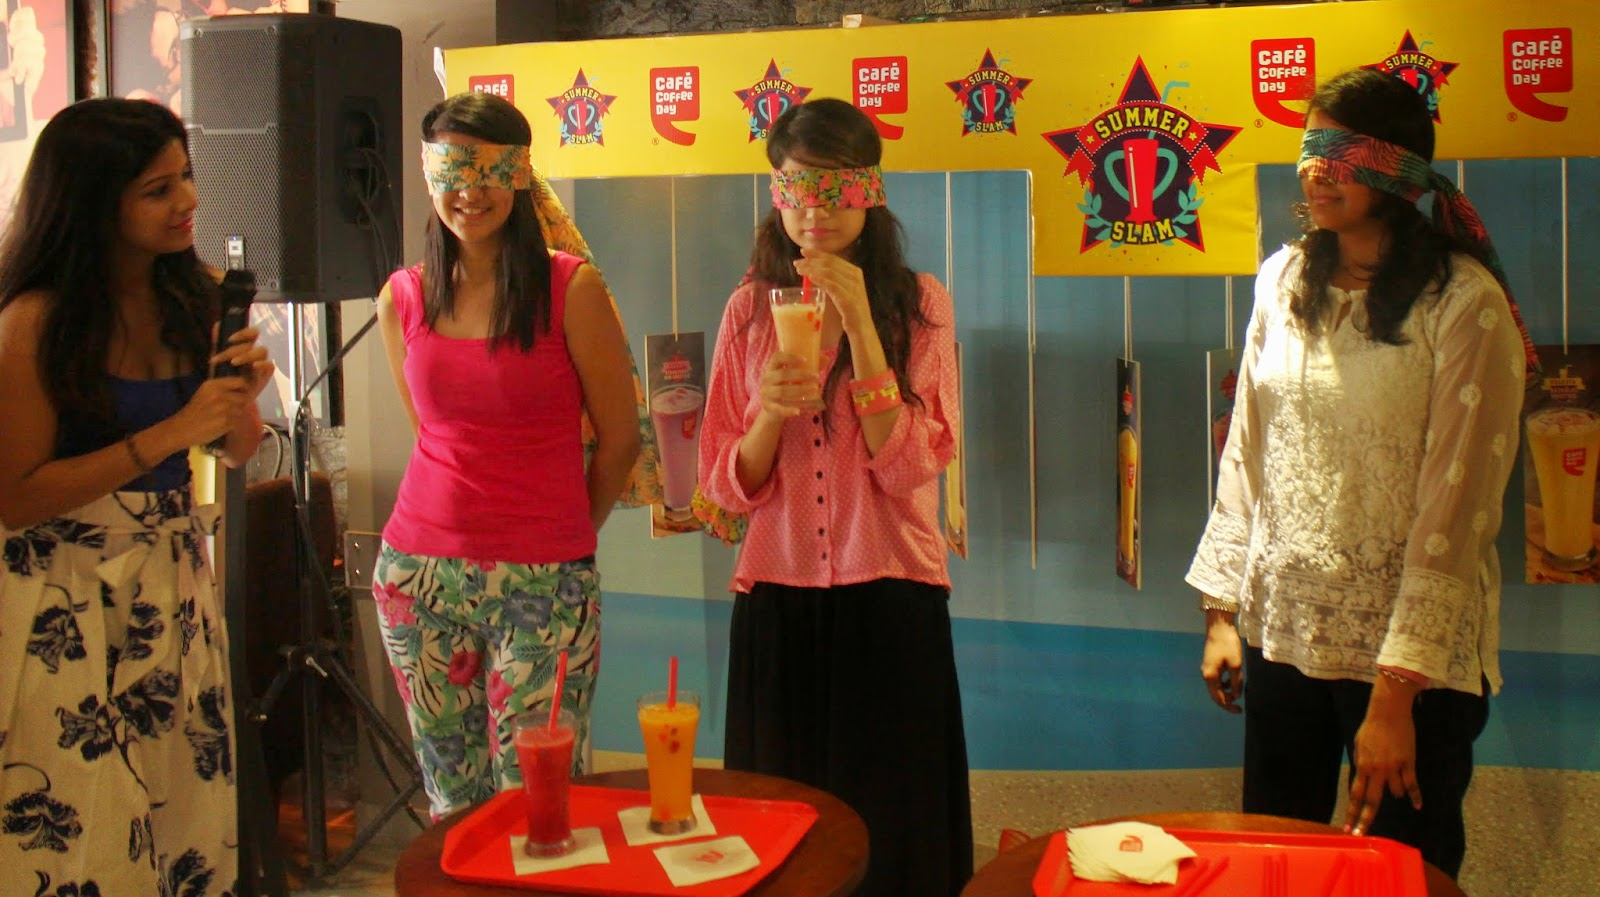 CCD, CCD Summer Slam, Cafe Coffee Day